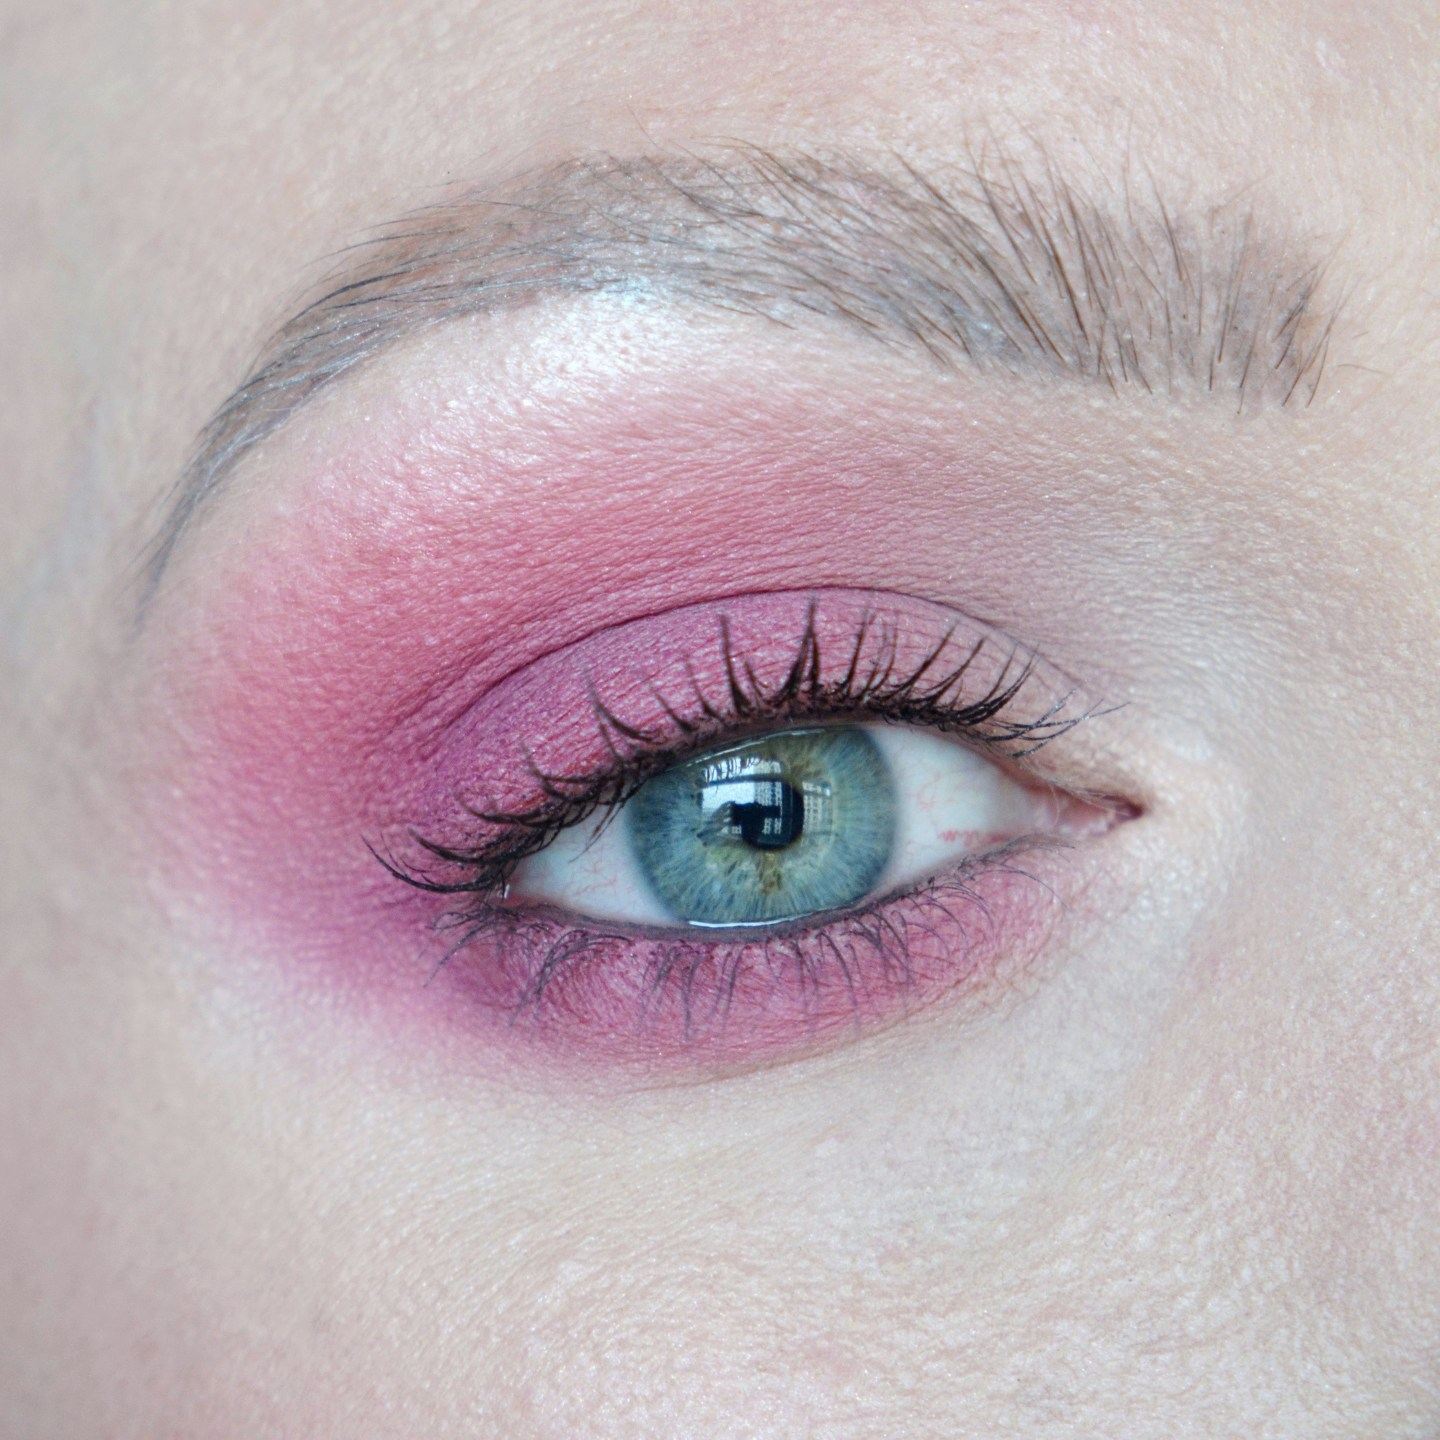 Pink eyeshadow inspiration. Bright eye make up look. Pink smokey eye, blue/green eyes. Bold make up.